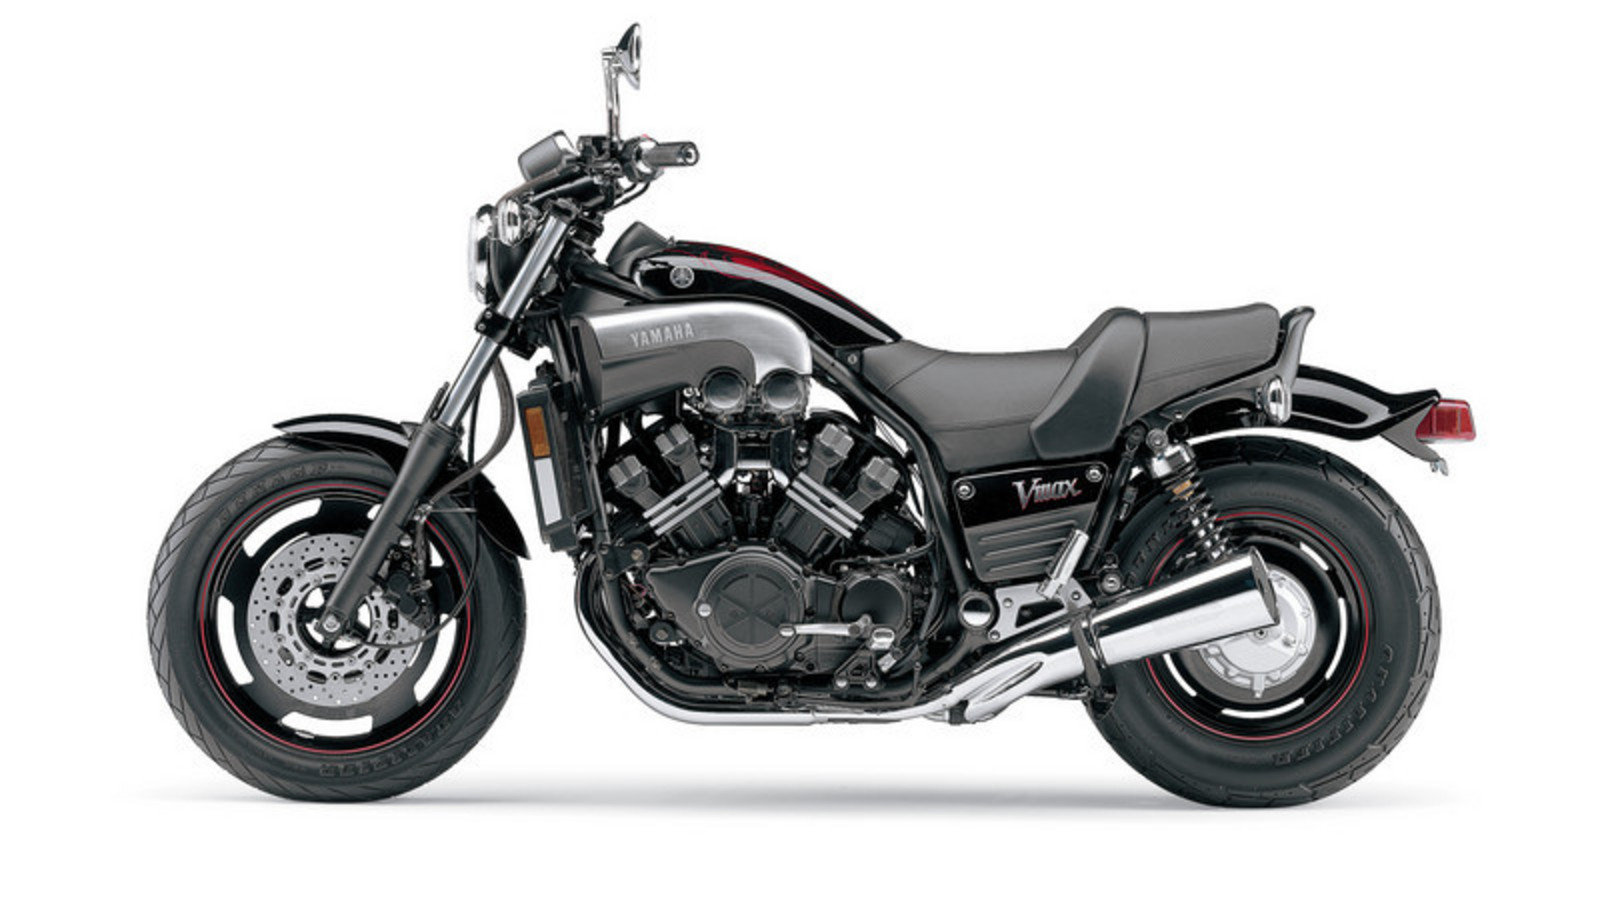 2006 yamaha v max picture 46438 motorcycle review top speed. Black Bedroom Furniture Sets. Home Design Ideas